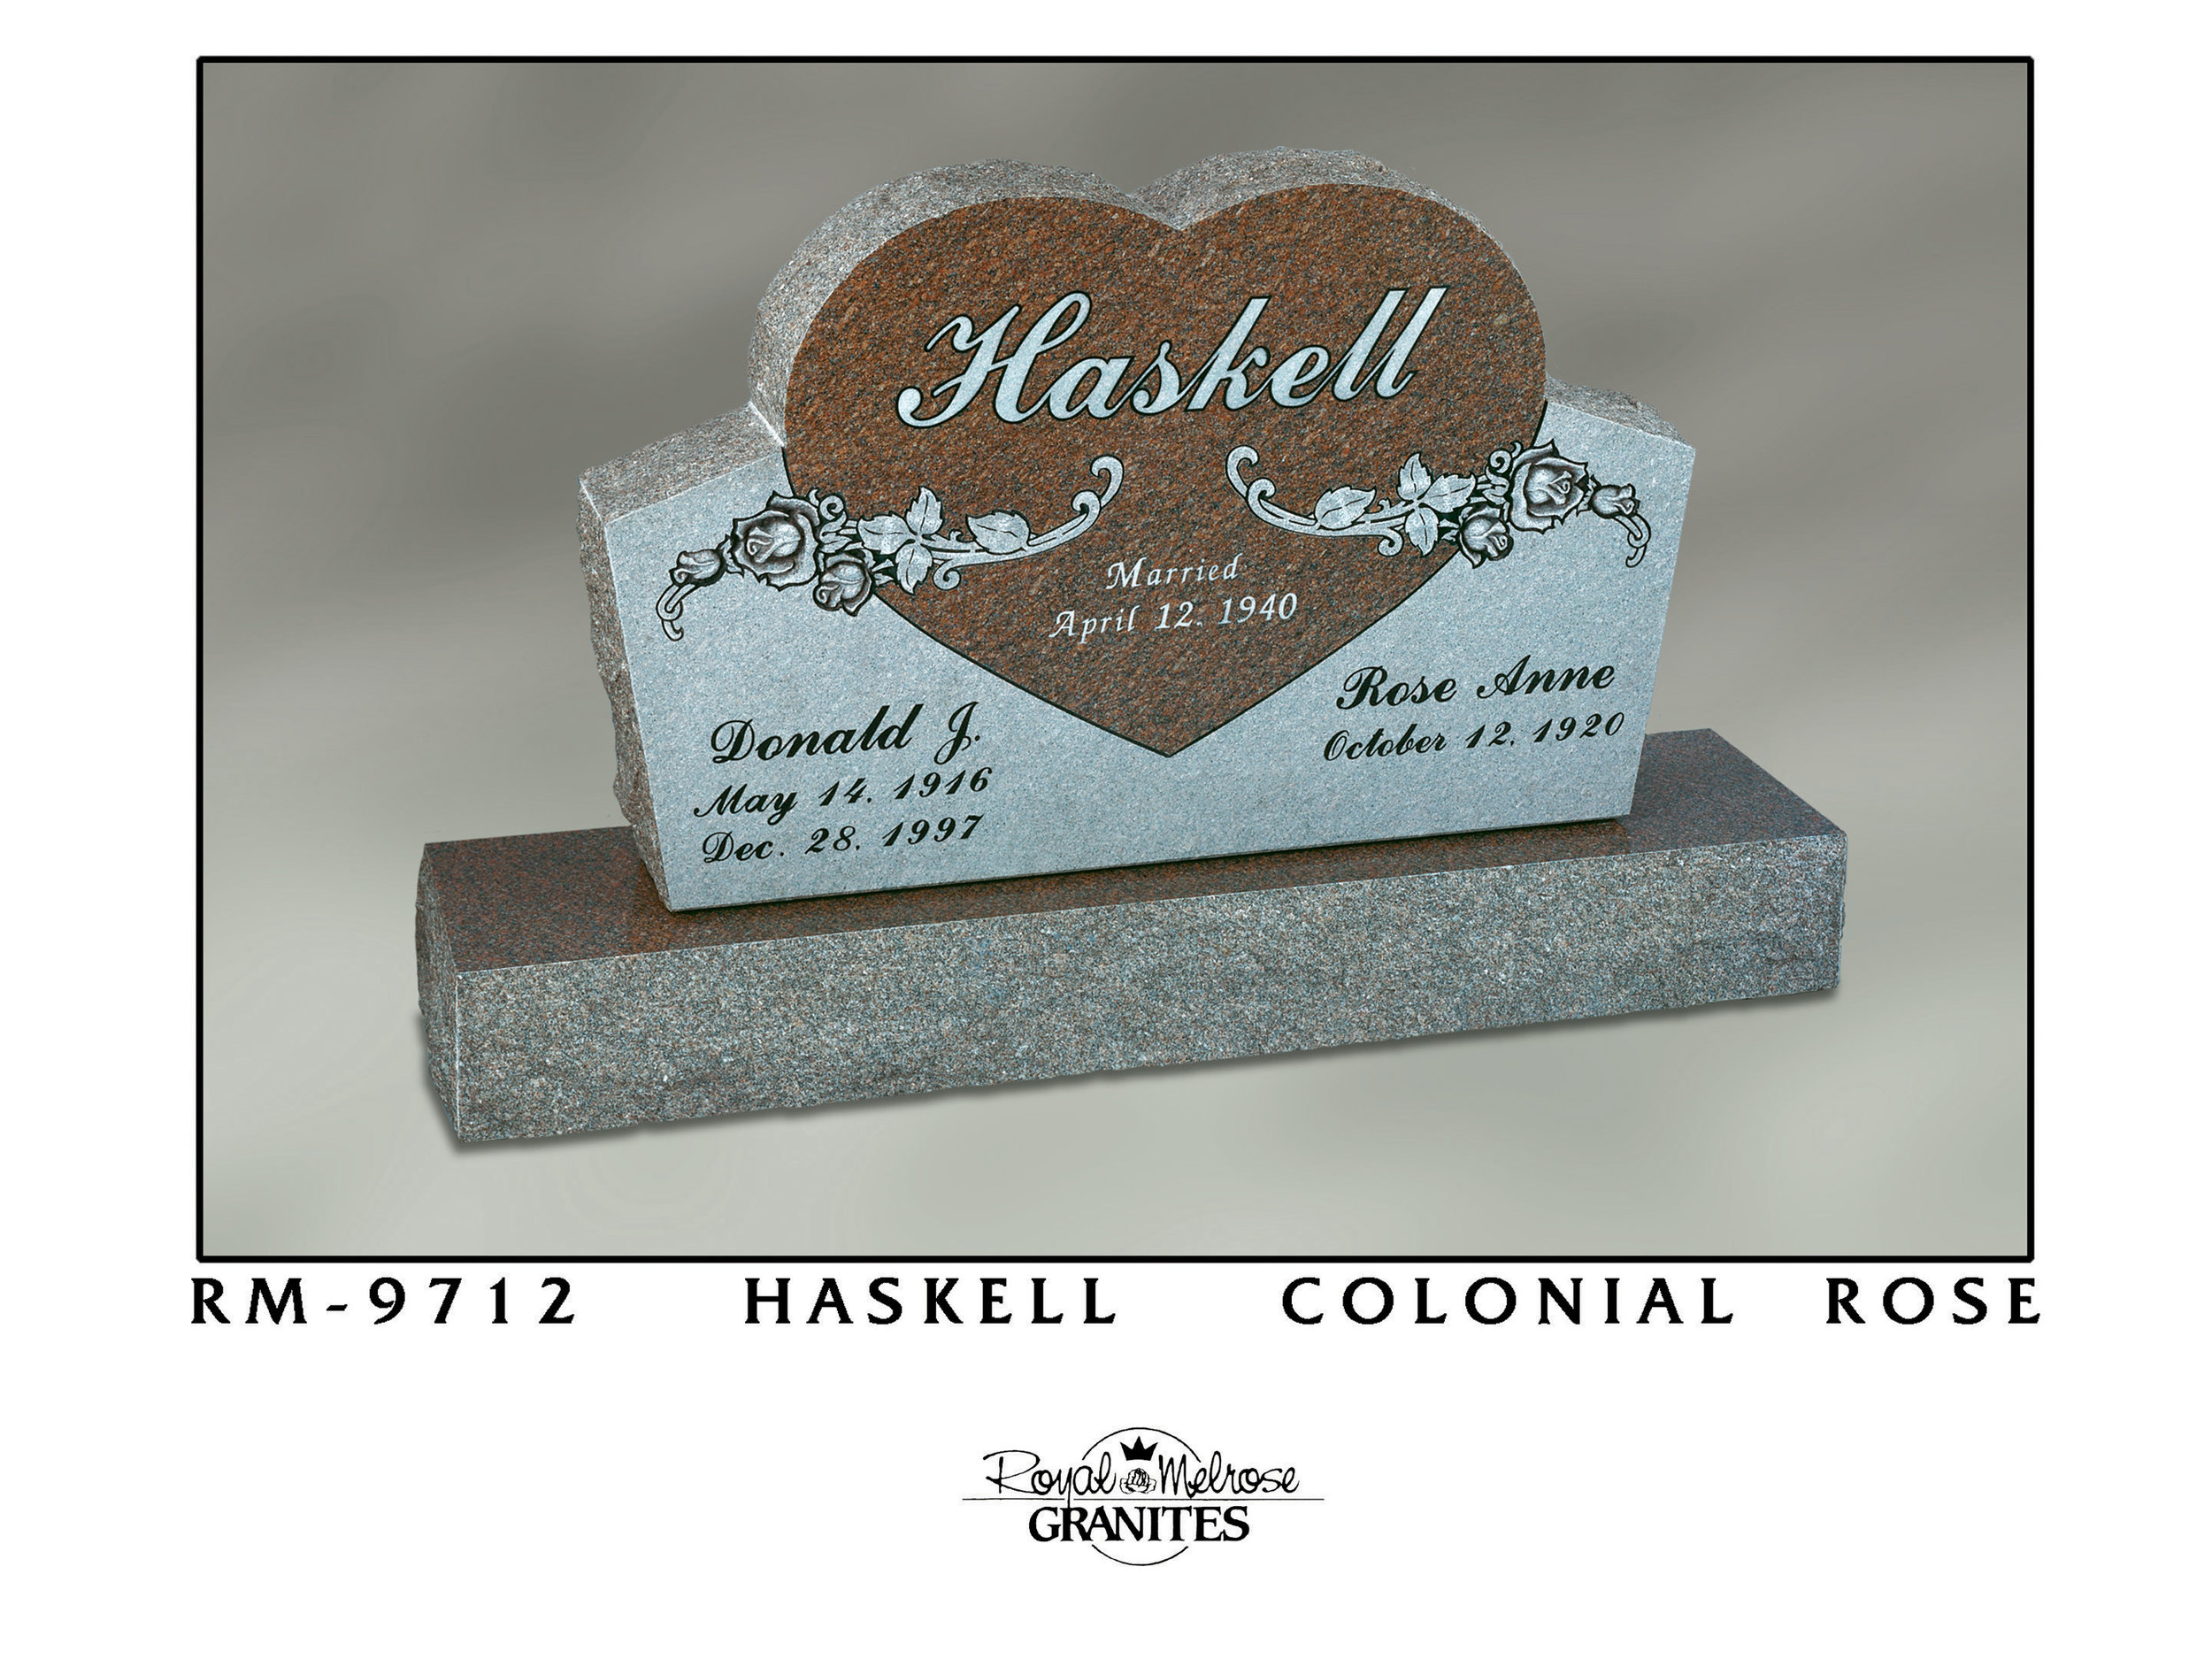 RM-9712 Haskell -colonial rose.jpg